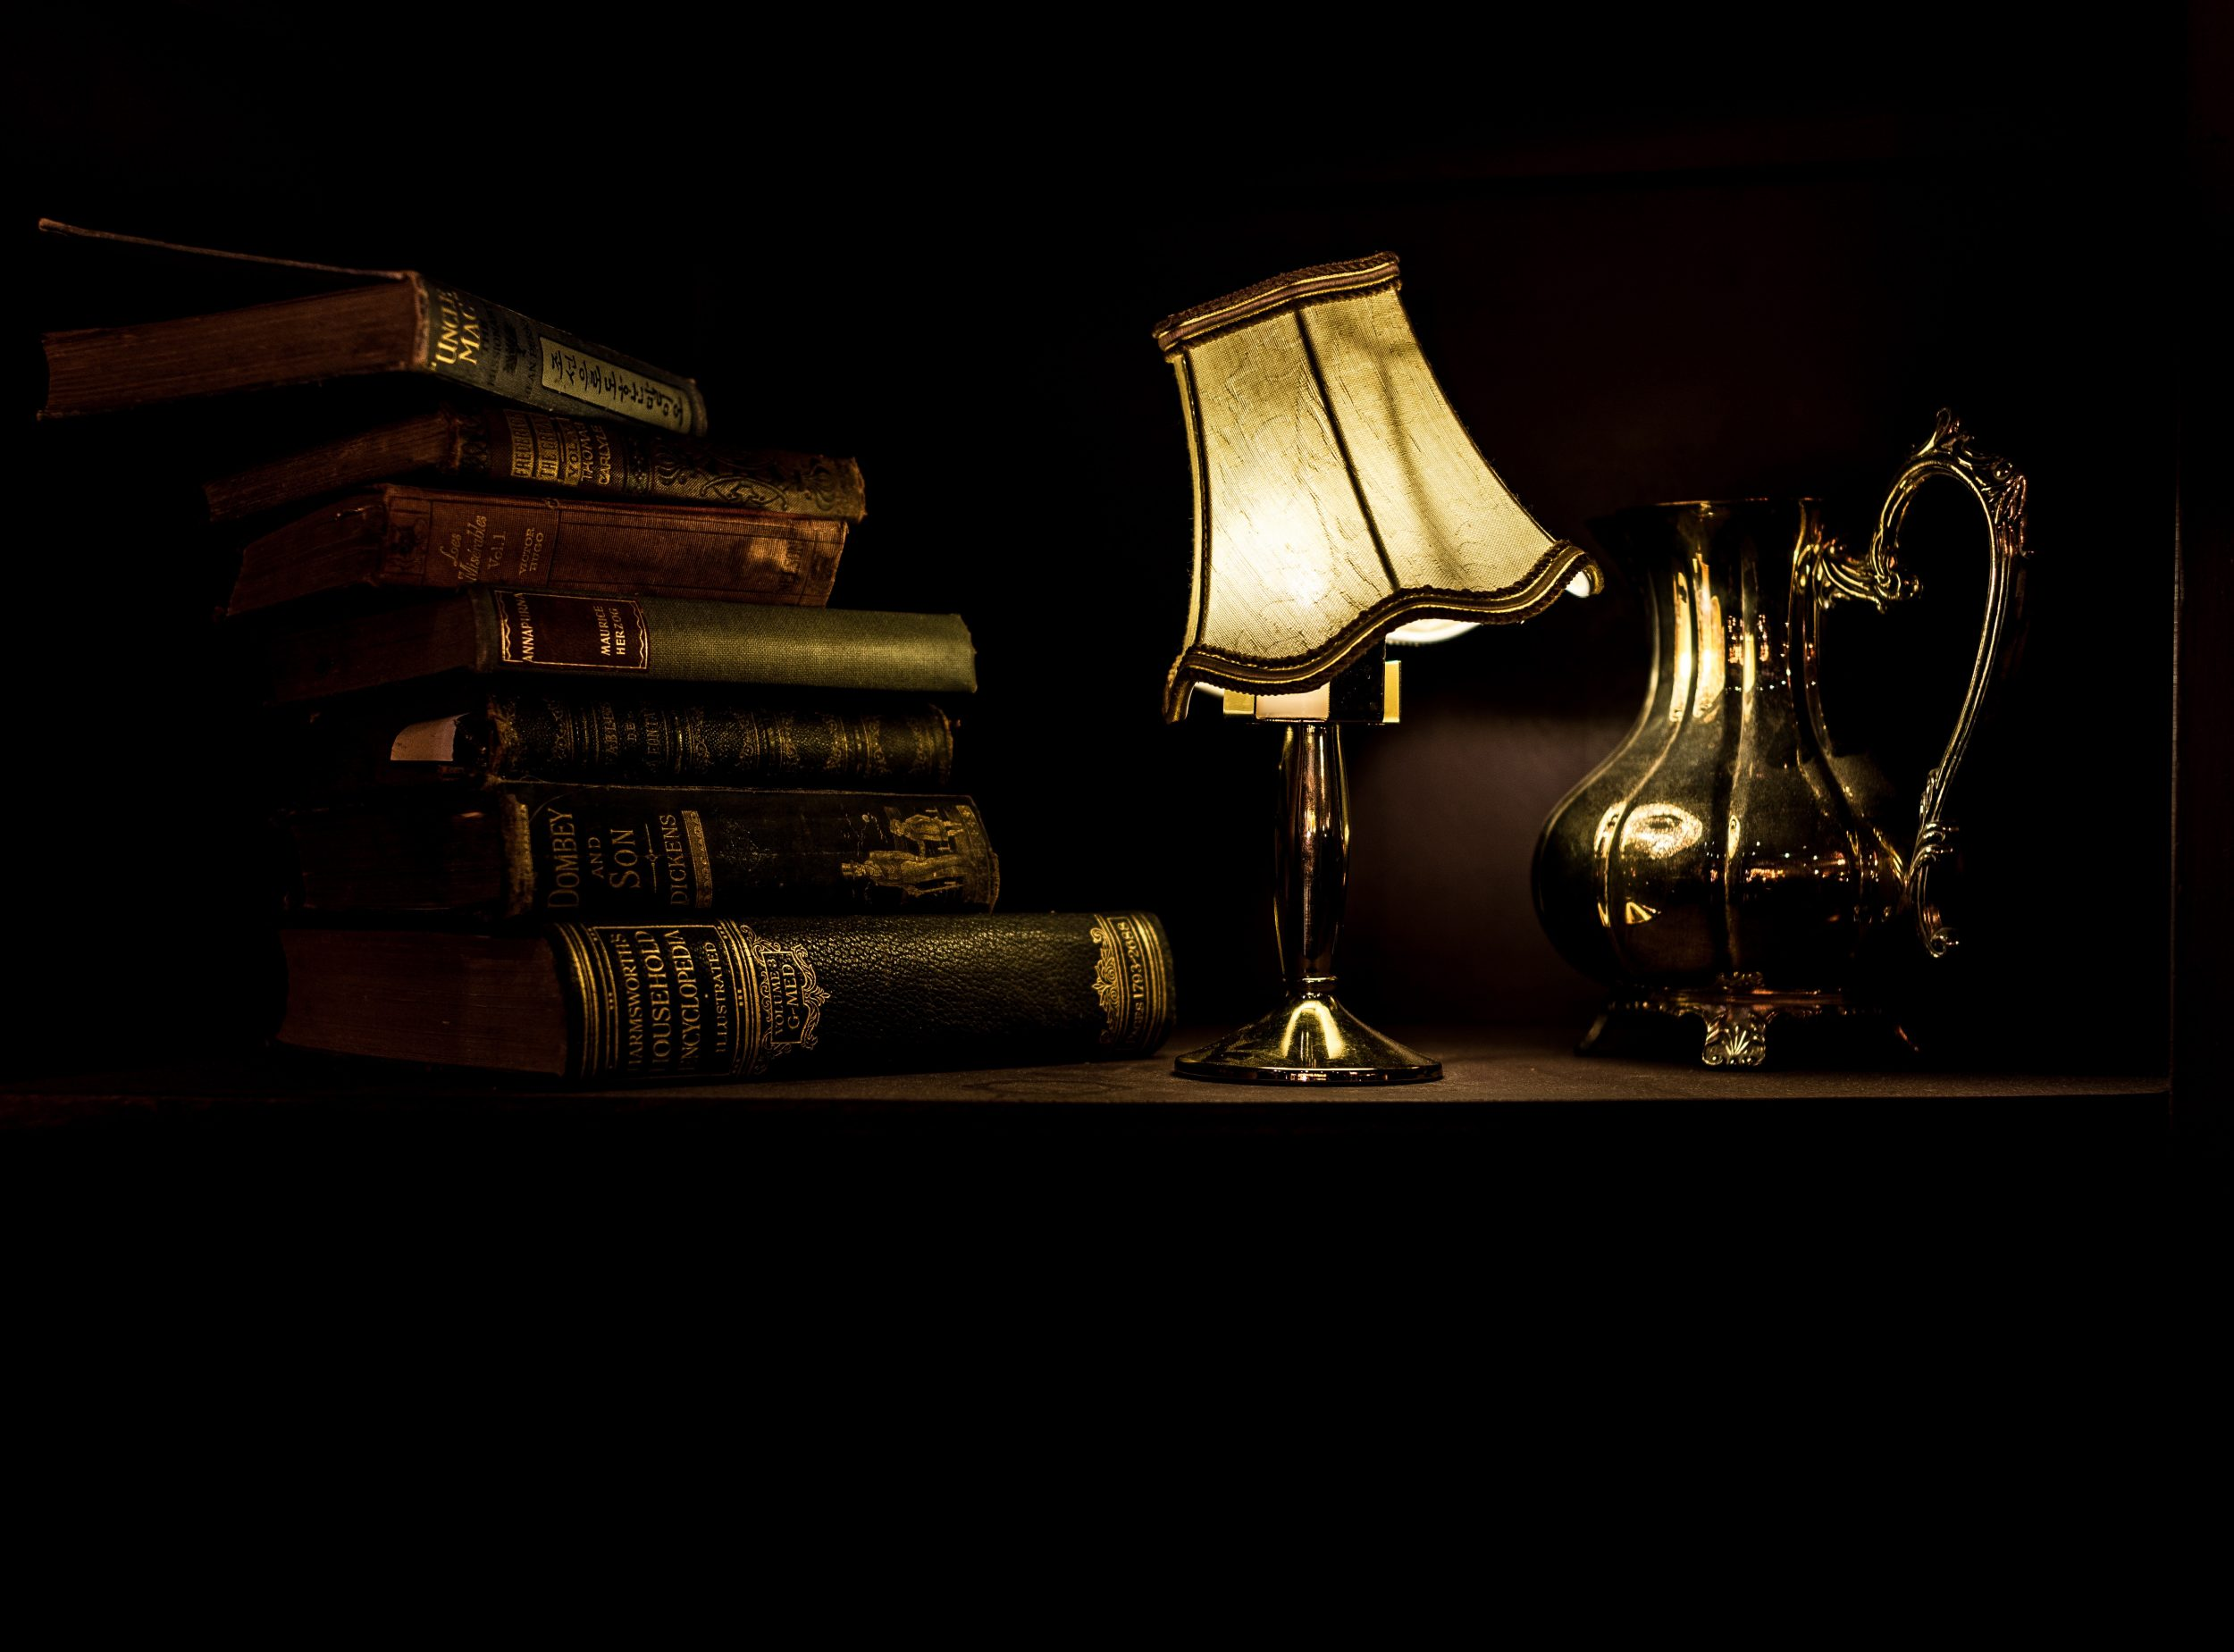 image of antique lamp and pile of books